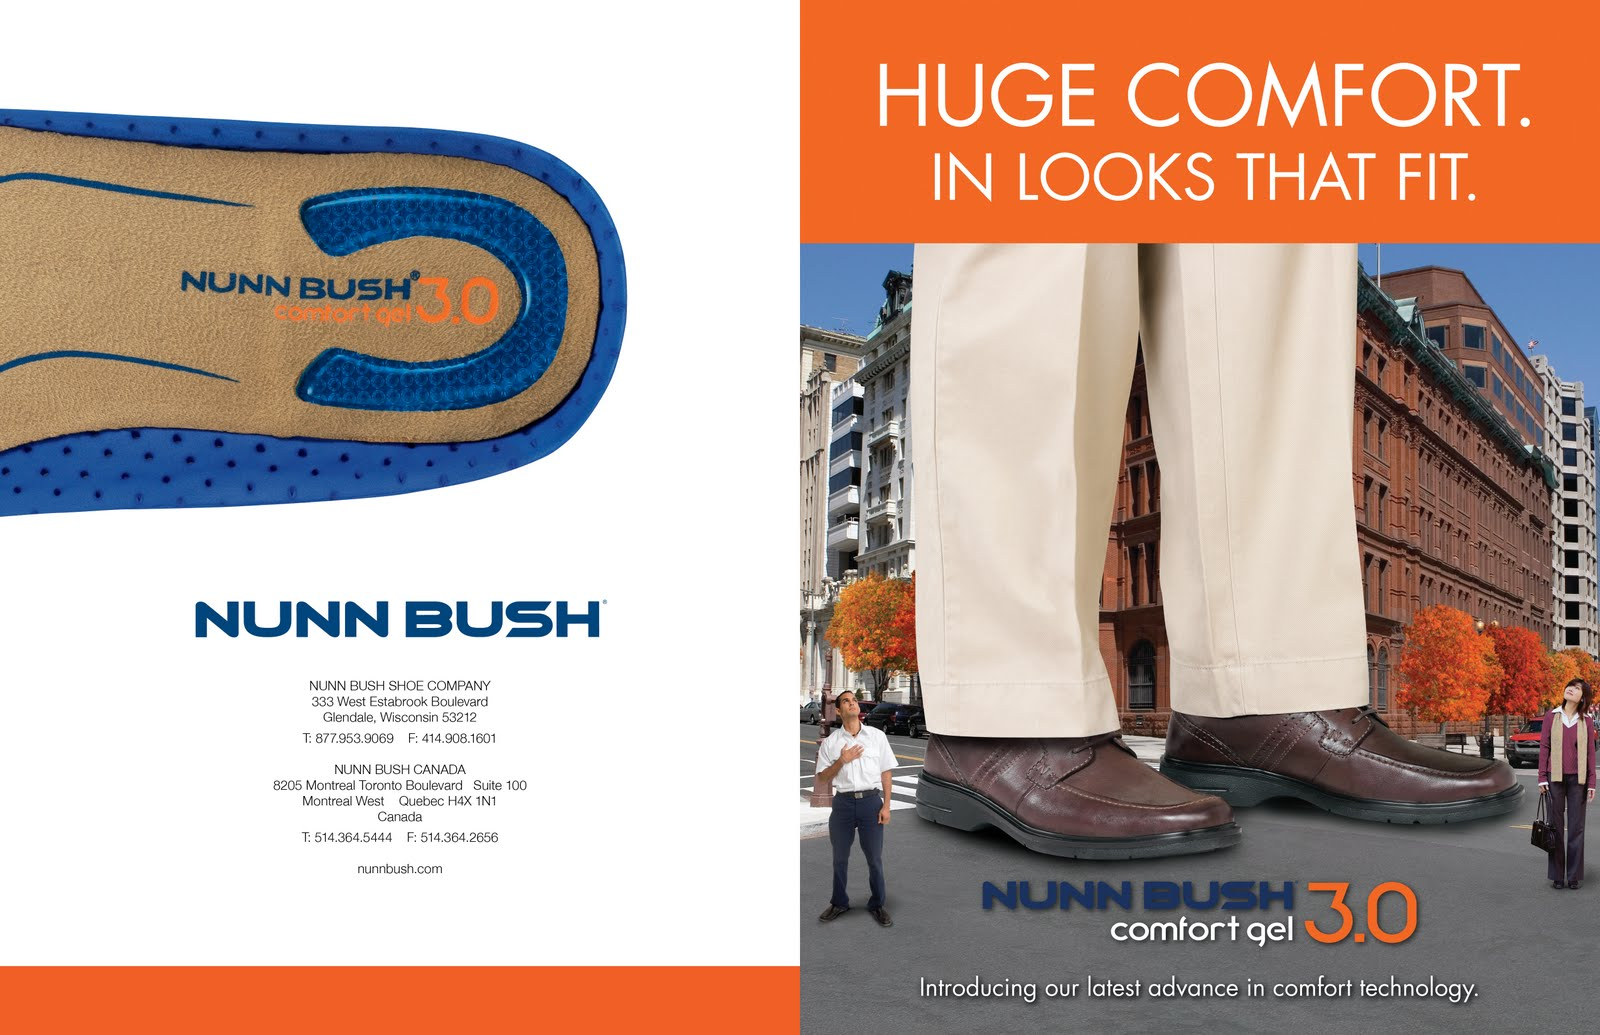 Designer Brian Buchberger Brochures And Collateral